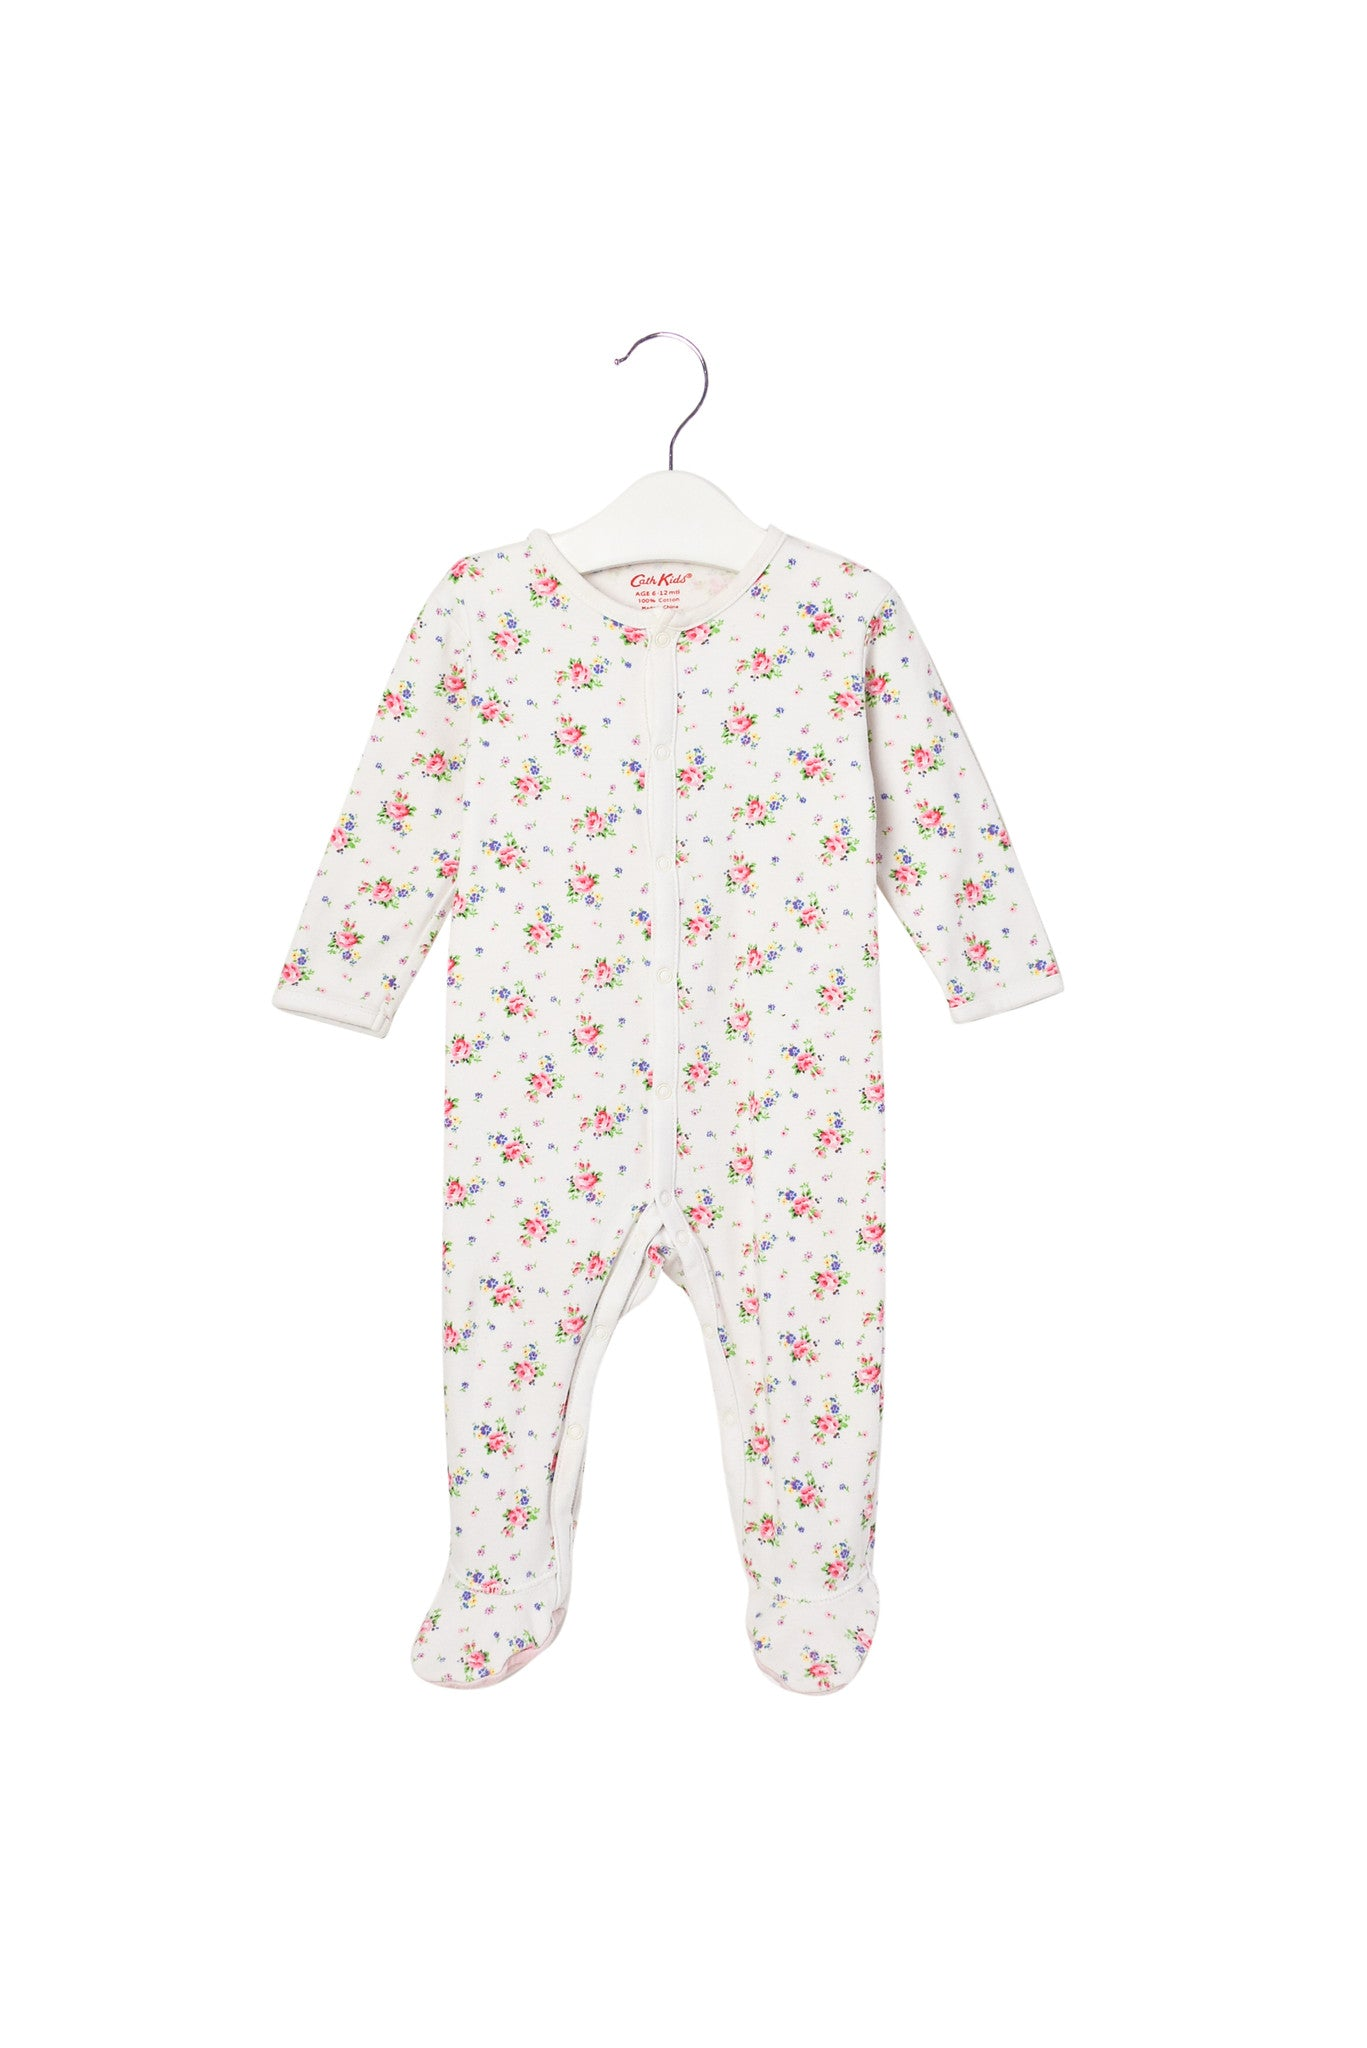 10003499 Cath Kidston Baby~Jumpsuit 6-12M at Retykle